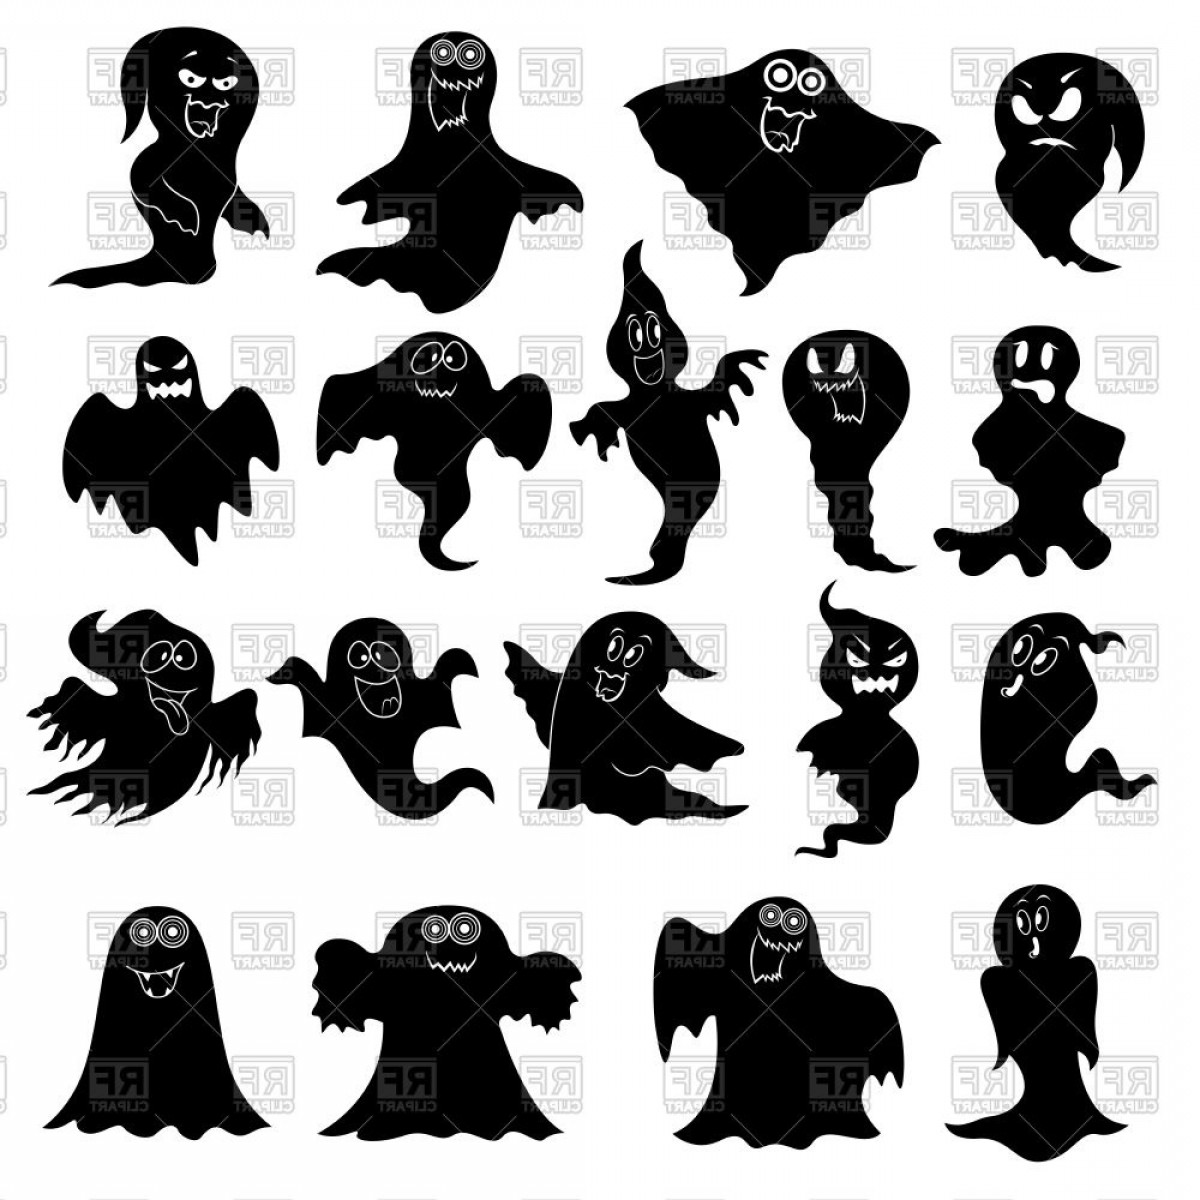 Ghost Vector Black: Collection Of Eighteen Amusing Flying Black Ghosts Vector Clipart